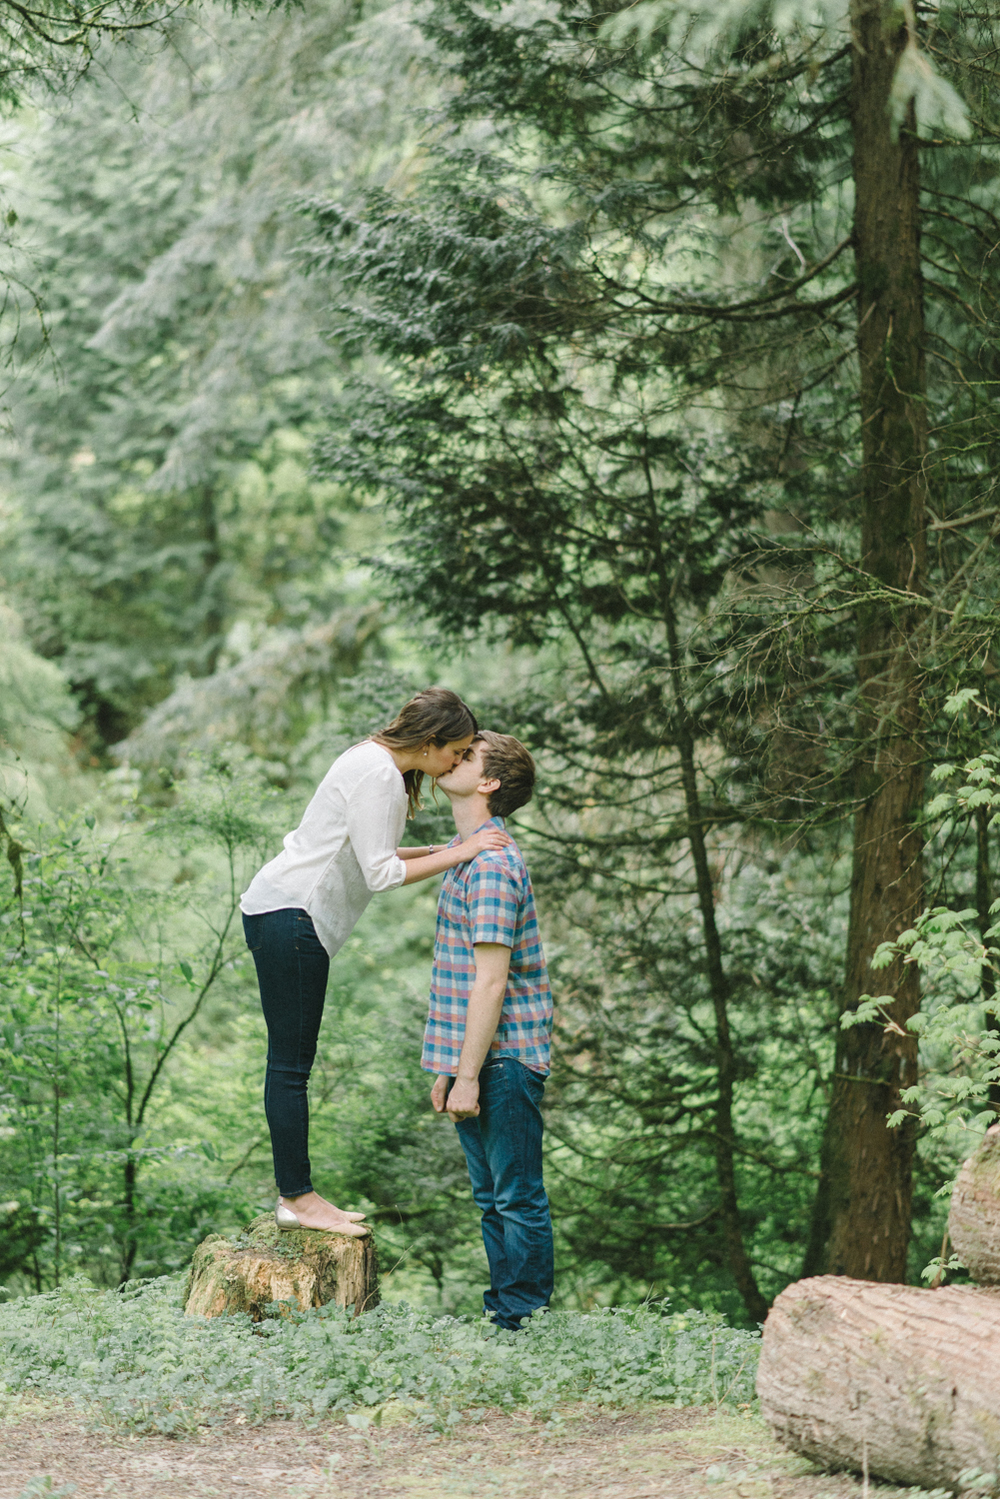 Portland-oregon-engagement-session-photographer-hoyt-arboretum-washington-park-shelley-marie-photography-forest-natural-woodland-wooden-log-kiss-moss-11